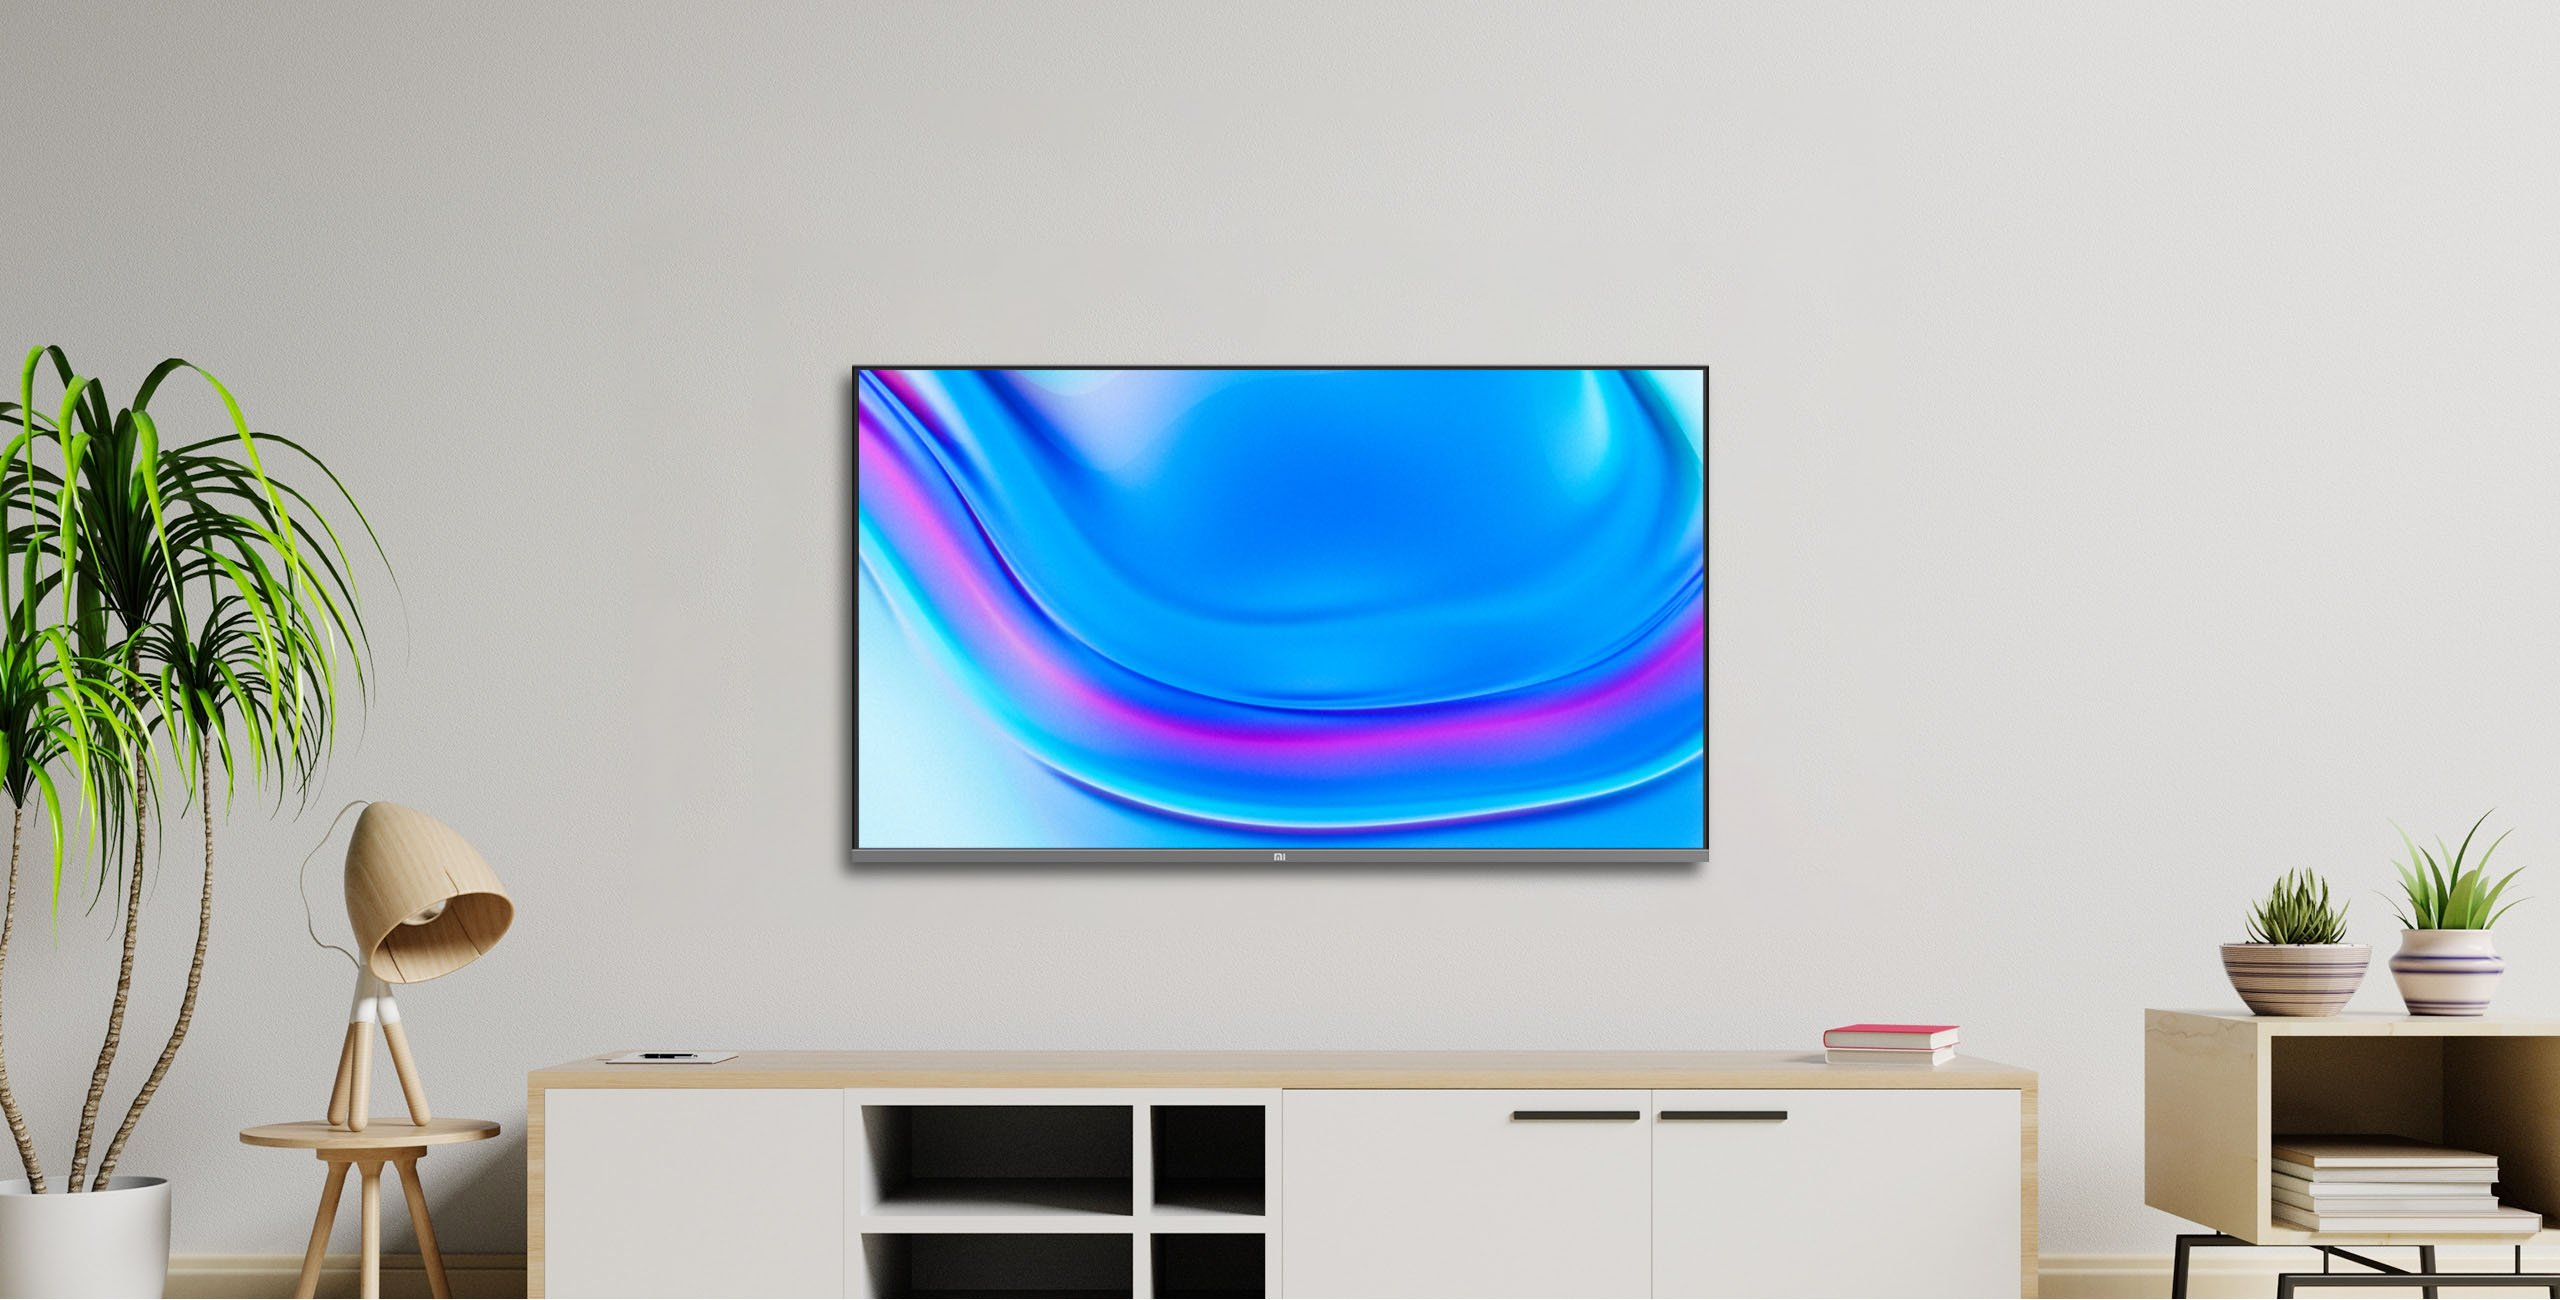 Mi TV 4A 80cm (32) Horizon Edition